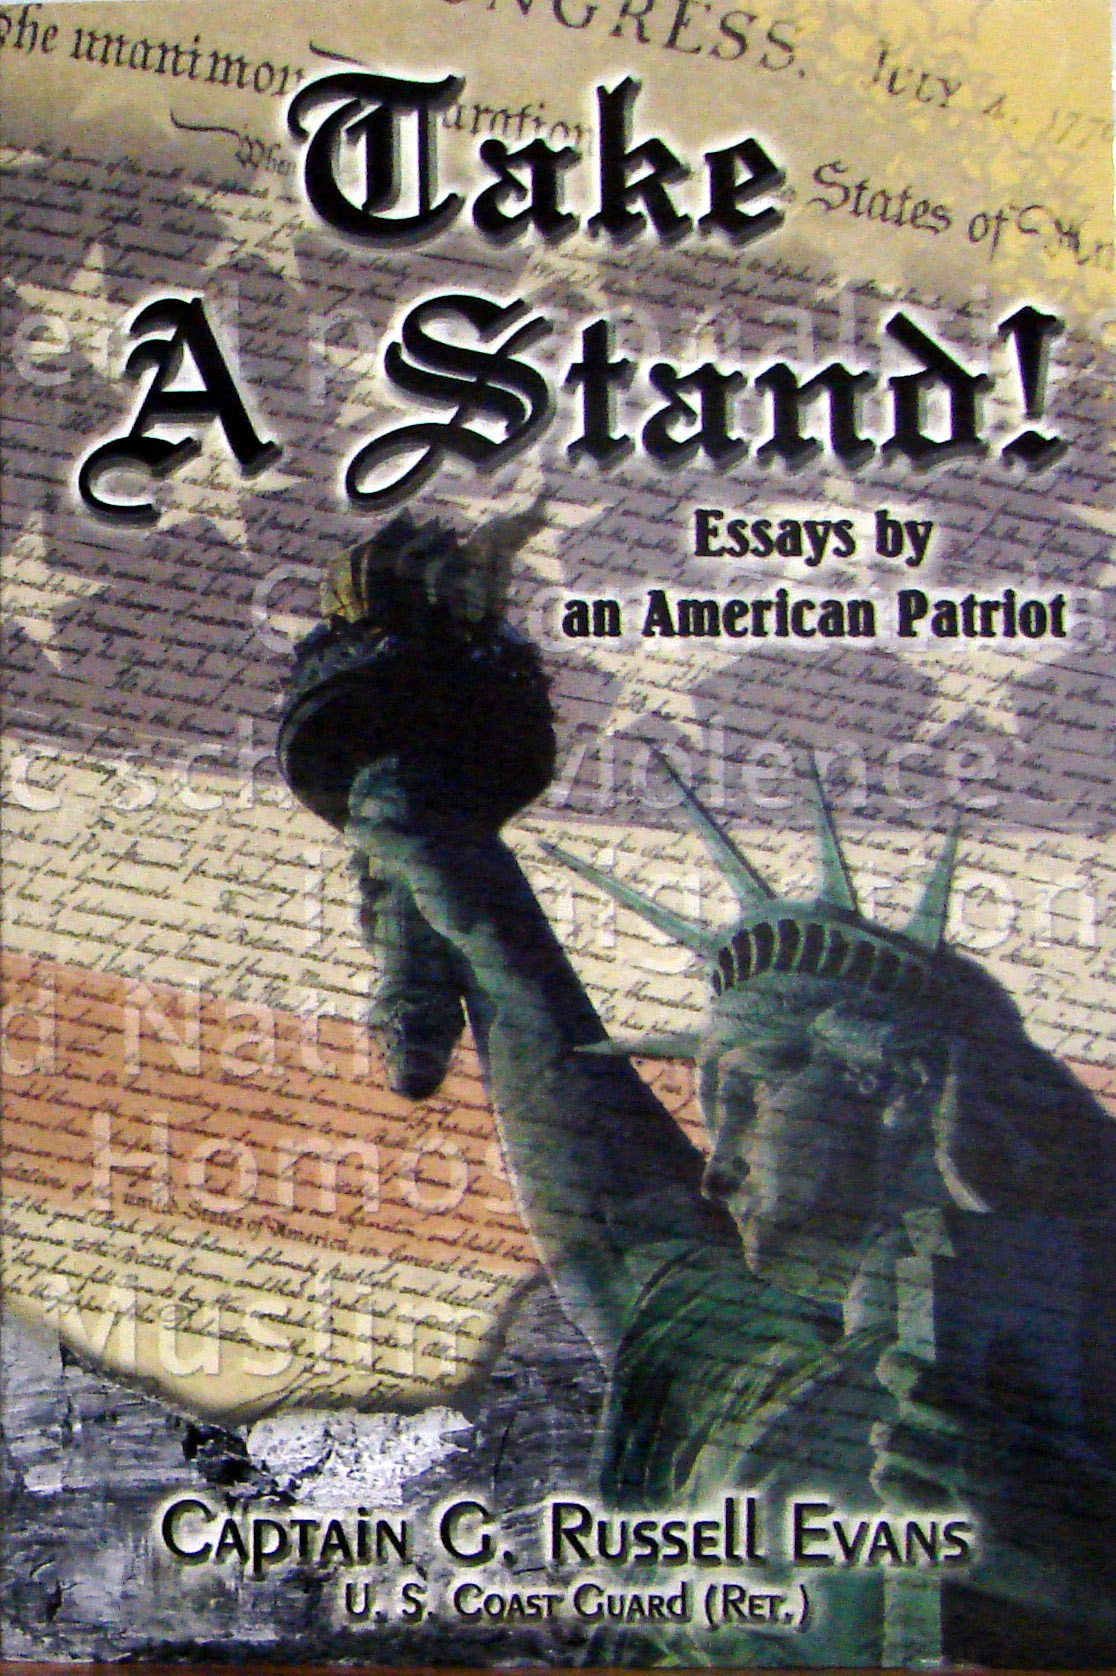 americanism-patriotism national essay contest Create your story amvets national americanism essay contest due date: april 30 requirements: each year, american veterans offers an essay contest designed to get students thinking about what patriotism and nationalism mean to them.